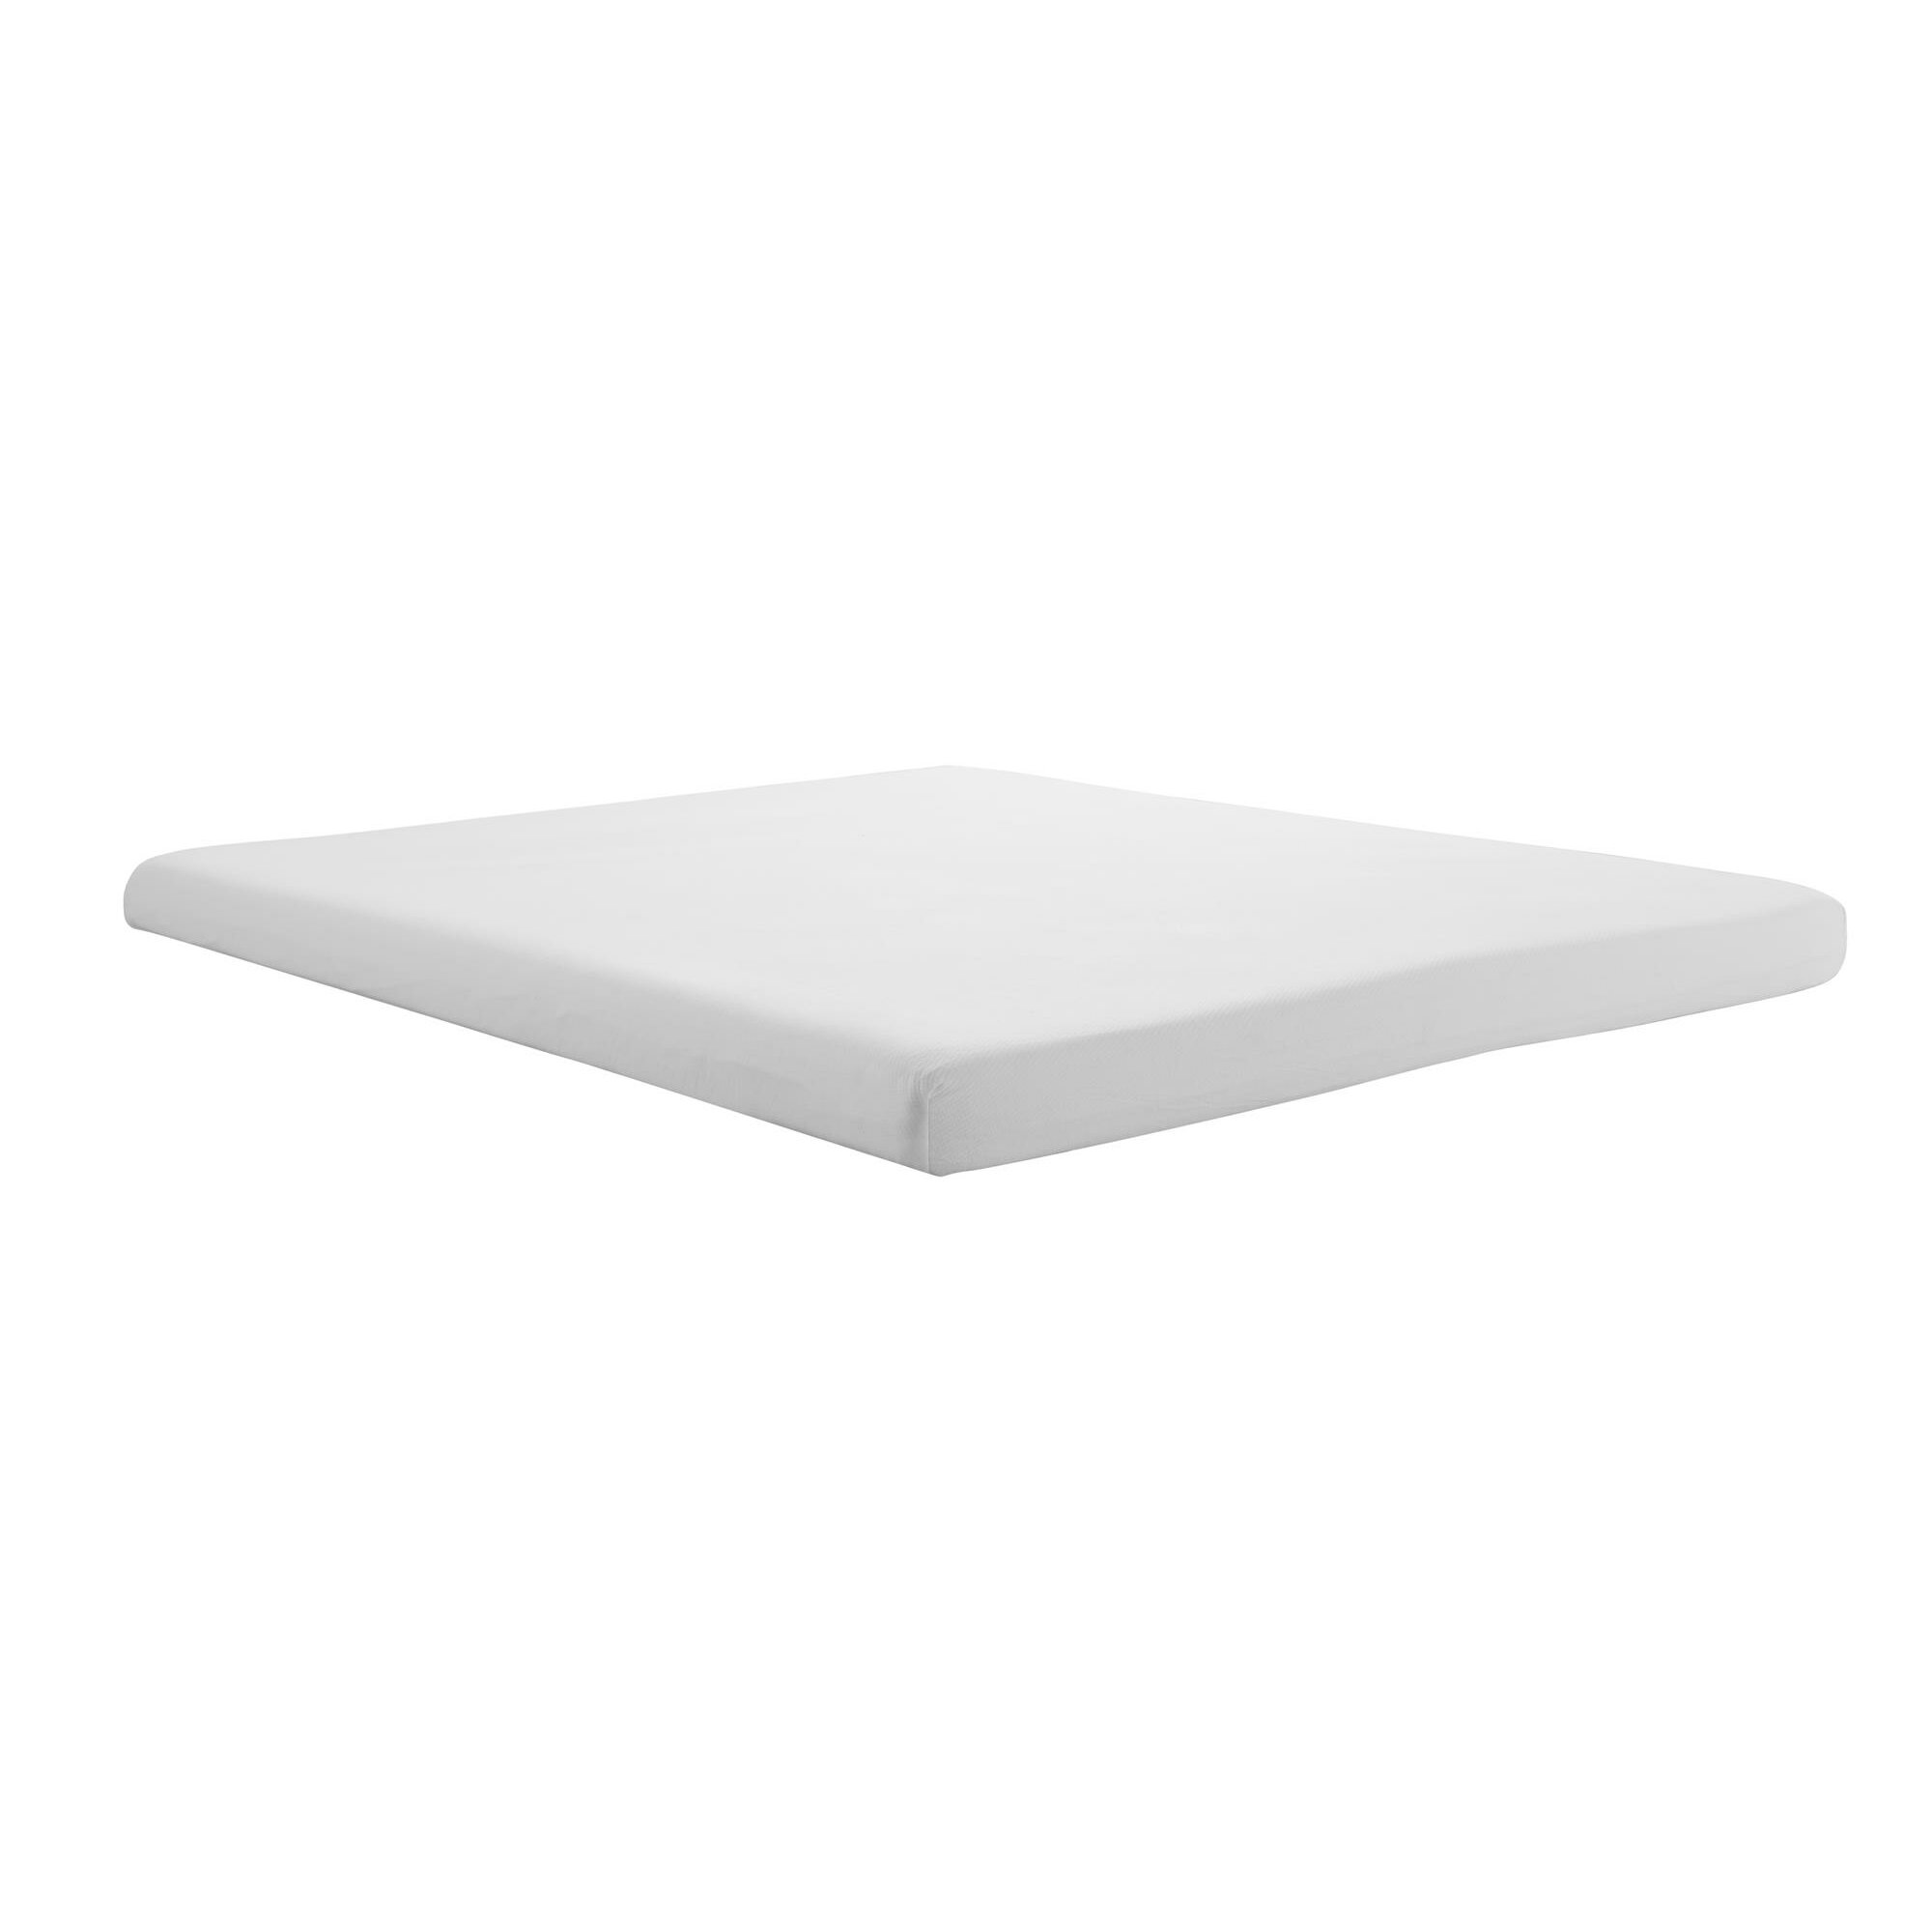 DHP Signature Sleep CertiPUR US Sofa Bed Replacement